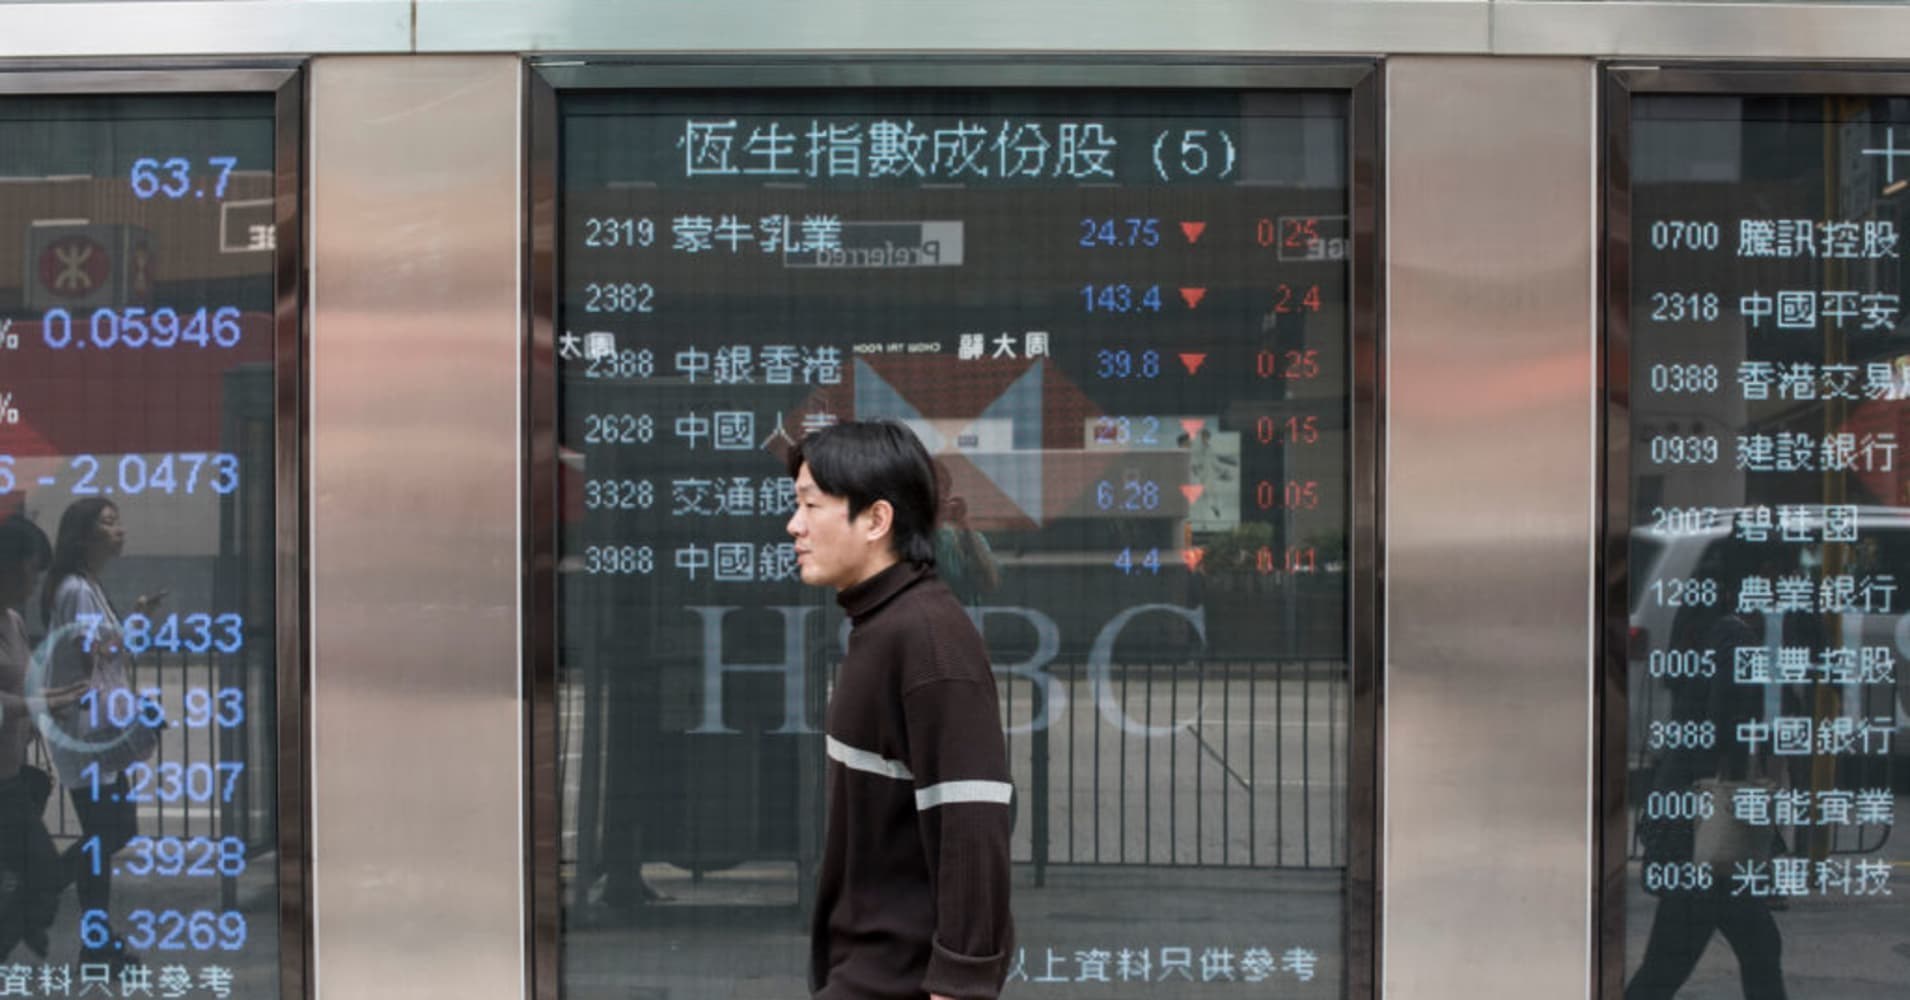 Huawei CFO arrest hits Asian tech stocks hard; broader markets sell-off as global rout continues